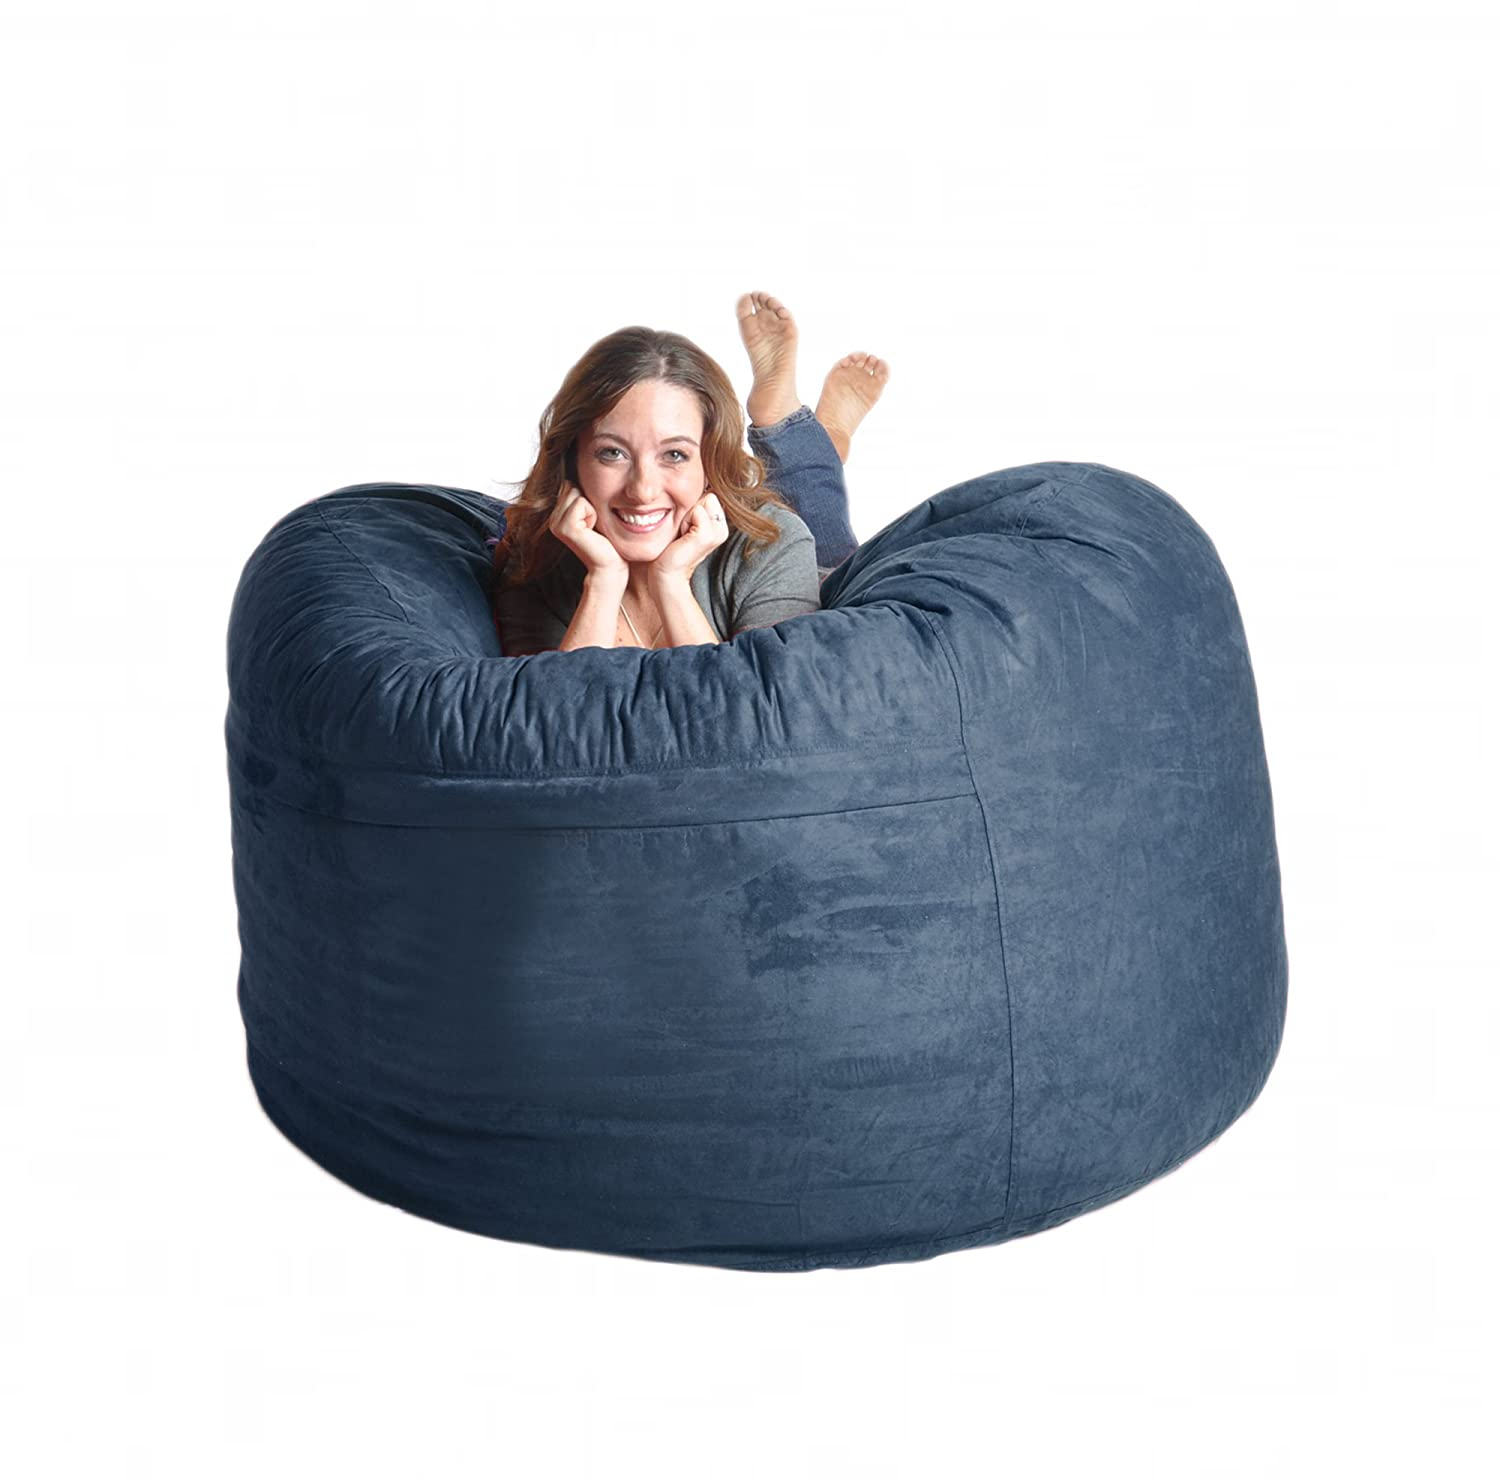 Giant bean bag chairs for adults - Amazon Com Slacker Sack 5 Feet Foam Microsuede Beanbag Chair Large Black Kitchen Dining